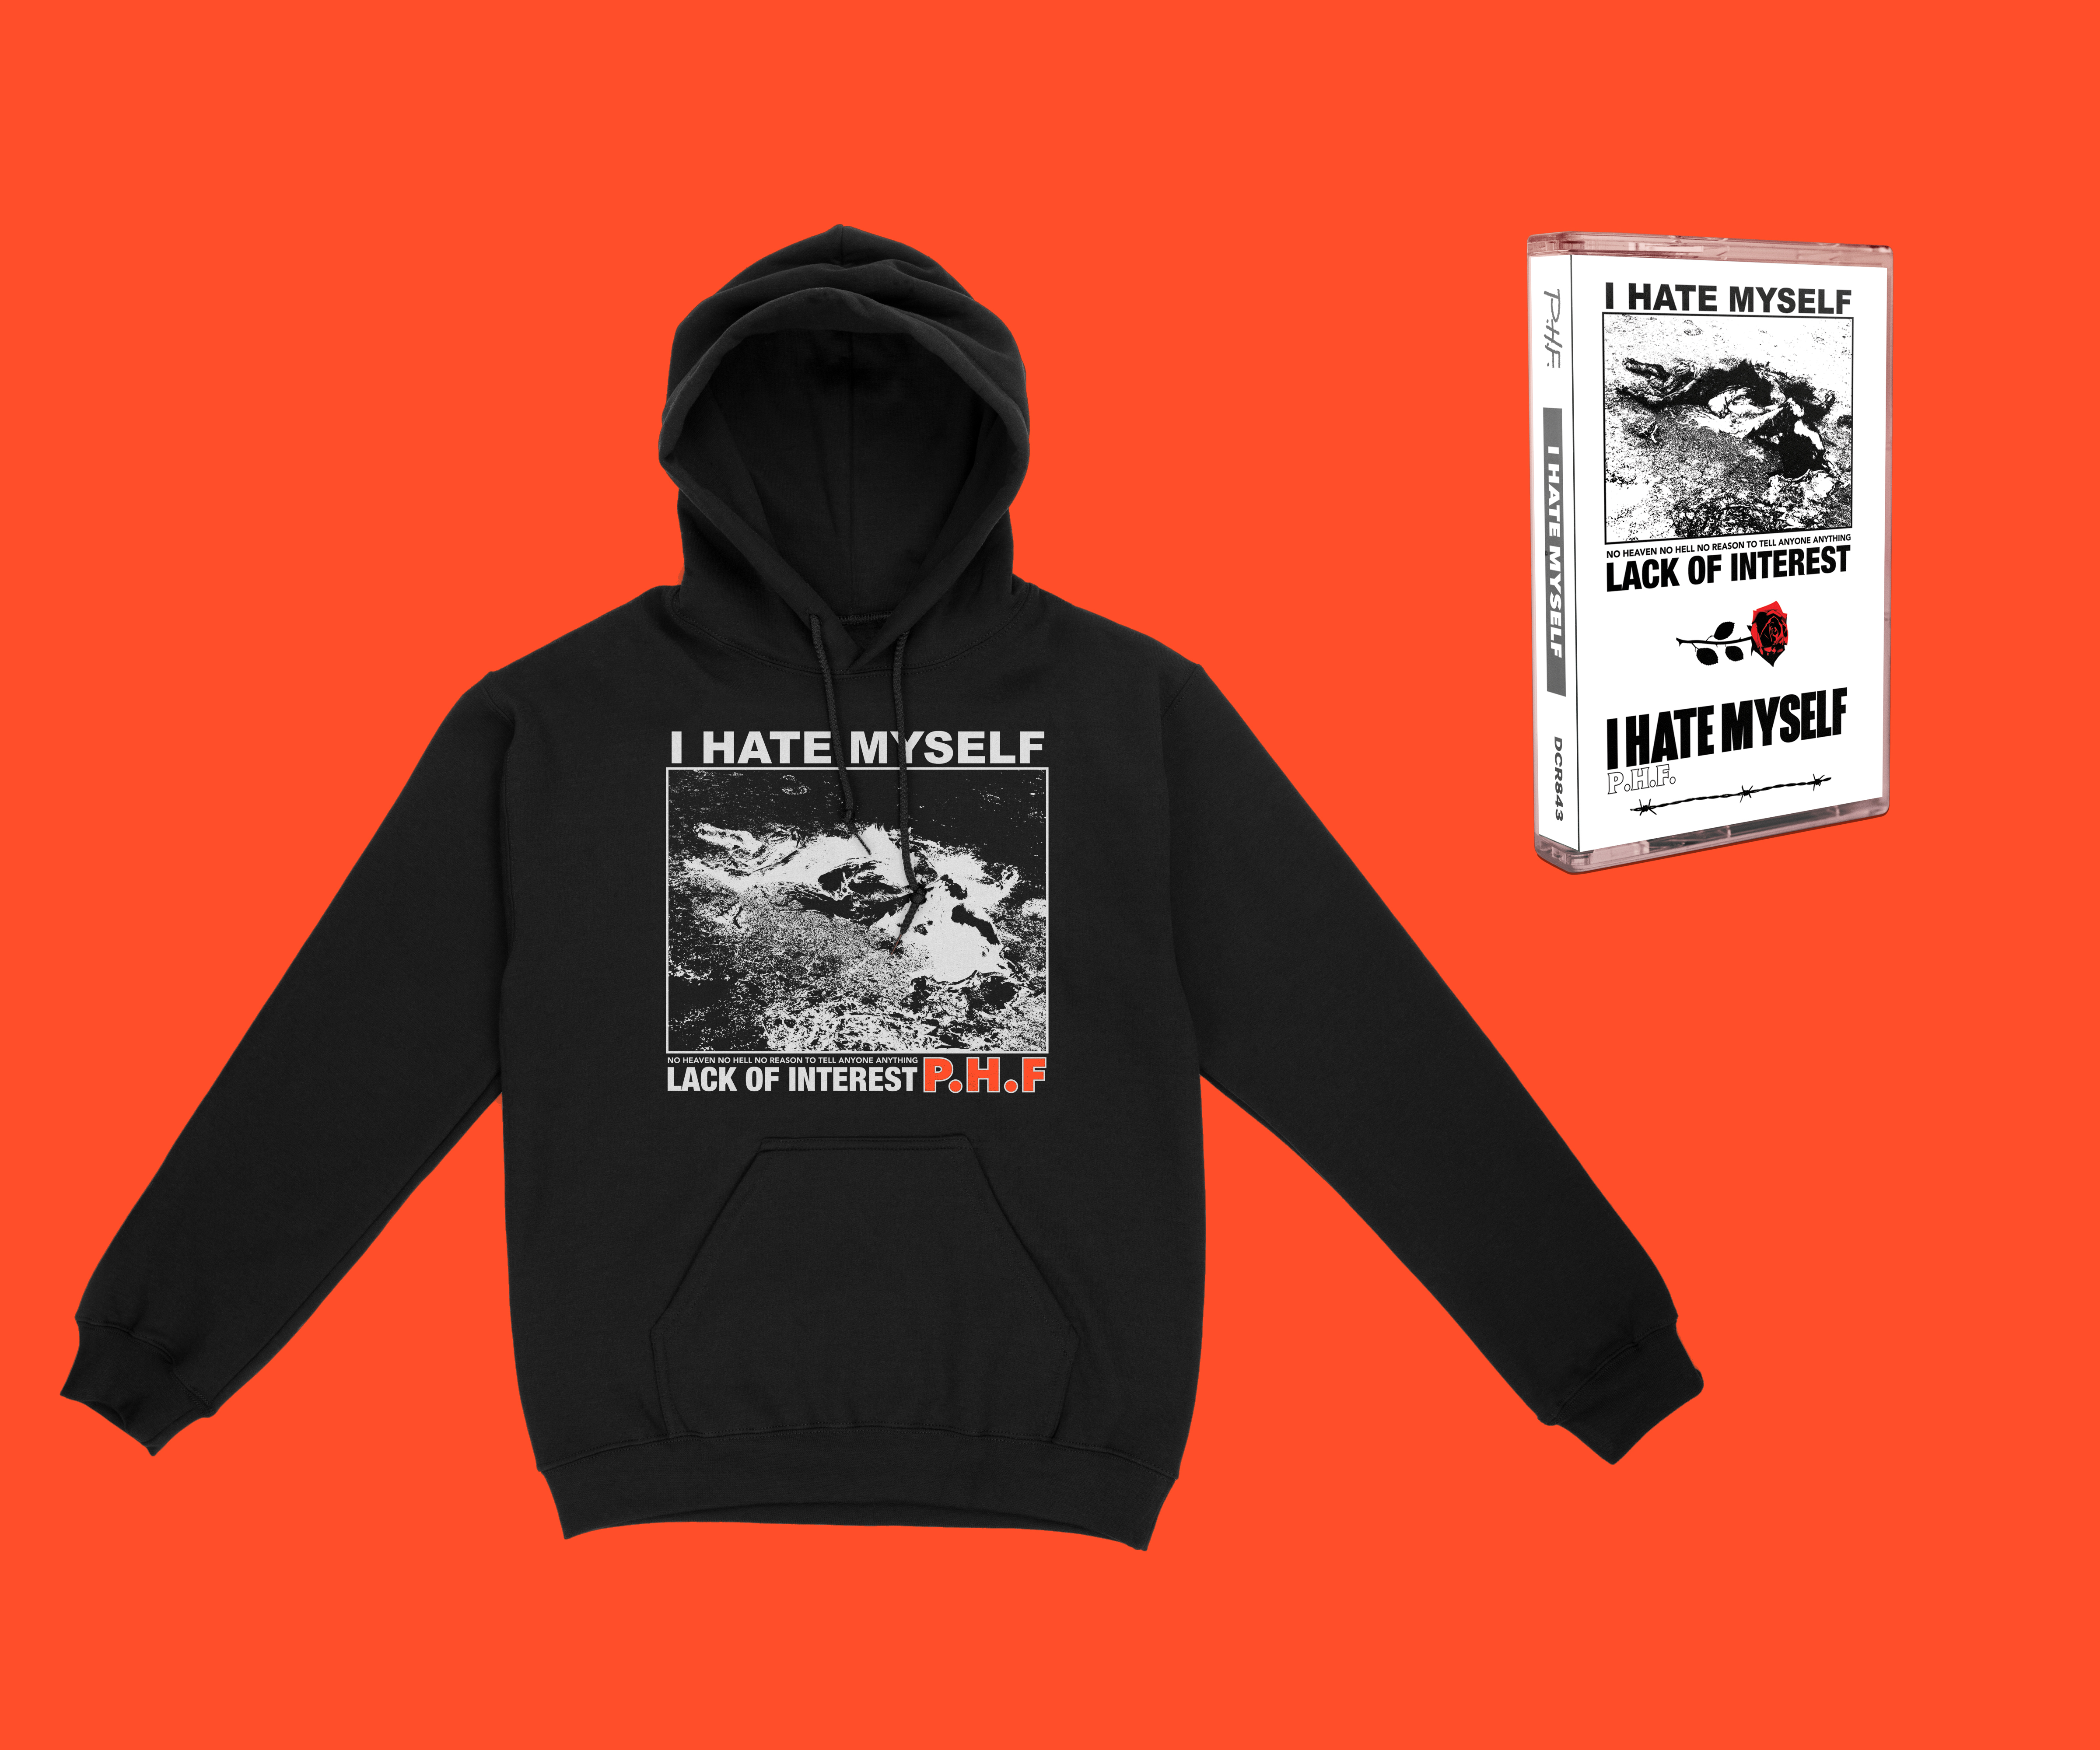 P.H.F. - I Hate Myself (Shirt, Hoodie, & Cassette)